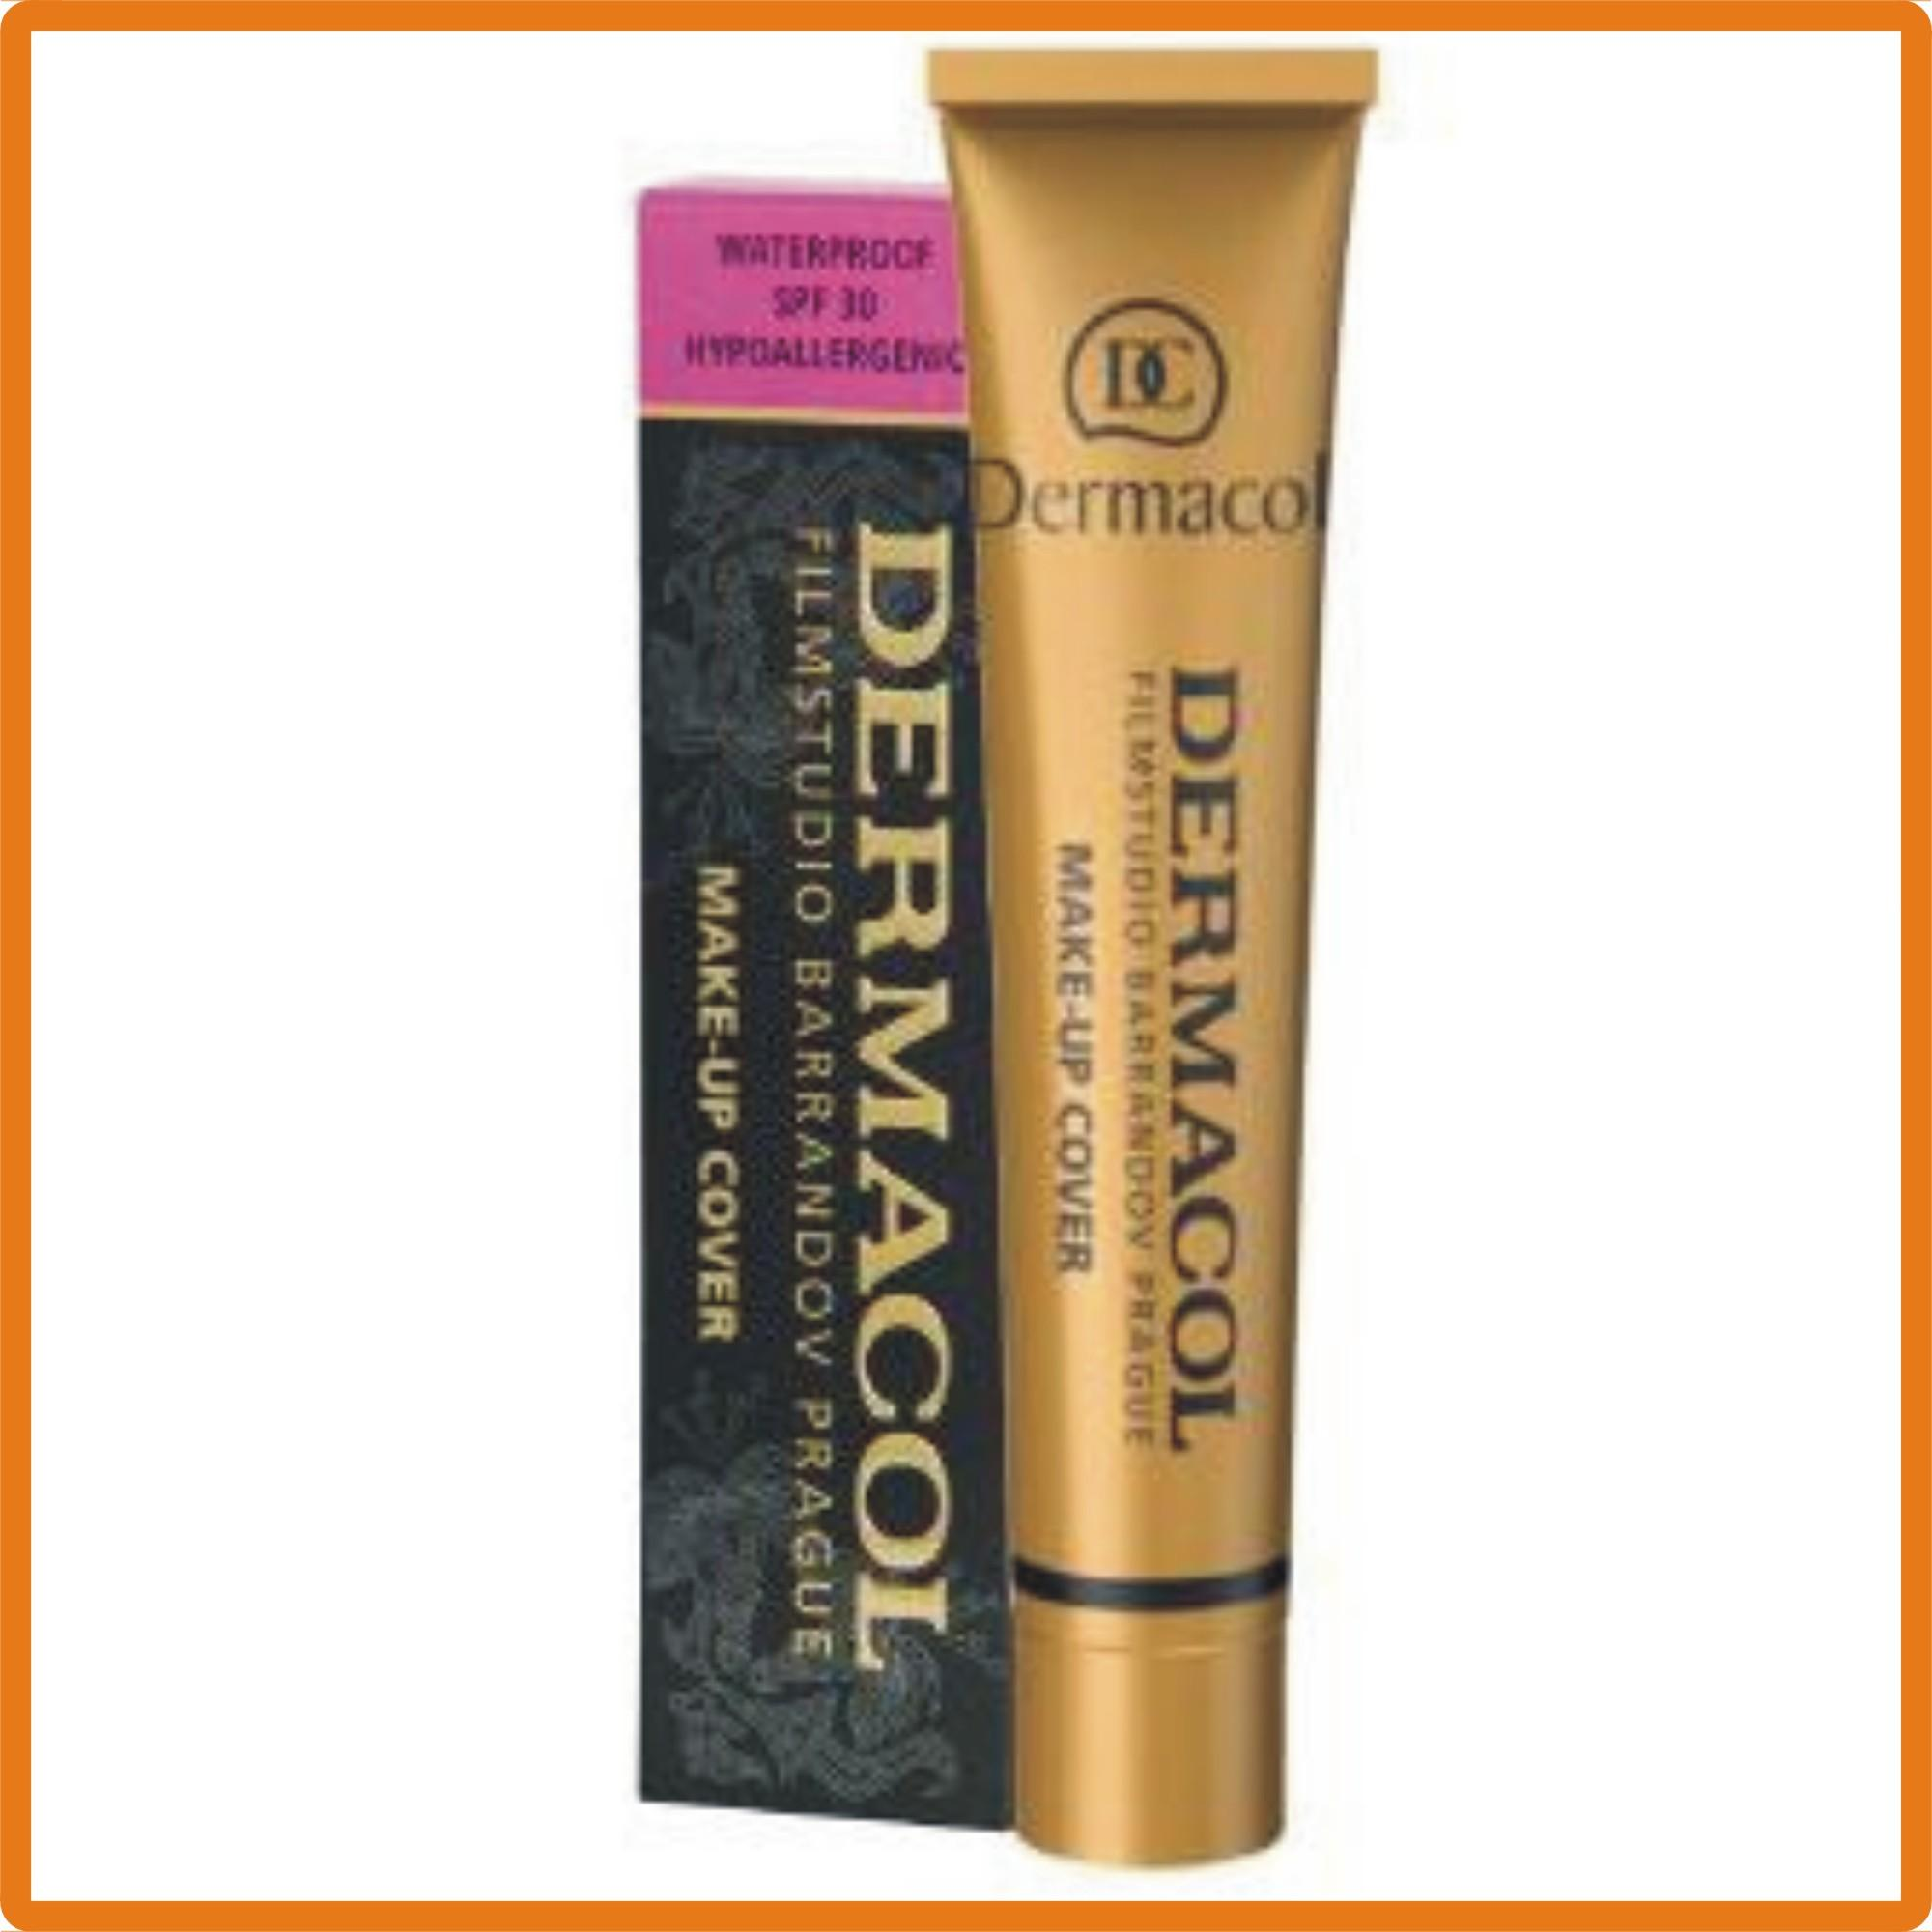 Dermacol Original Make-Up Cover Foundation water proof spf 30 (210): Buy Online at Best Prices in Pakistan | Daraz.pk